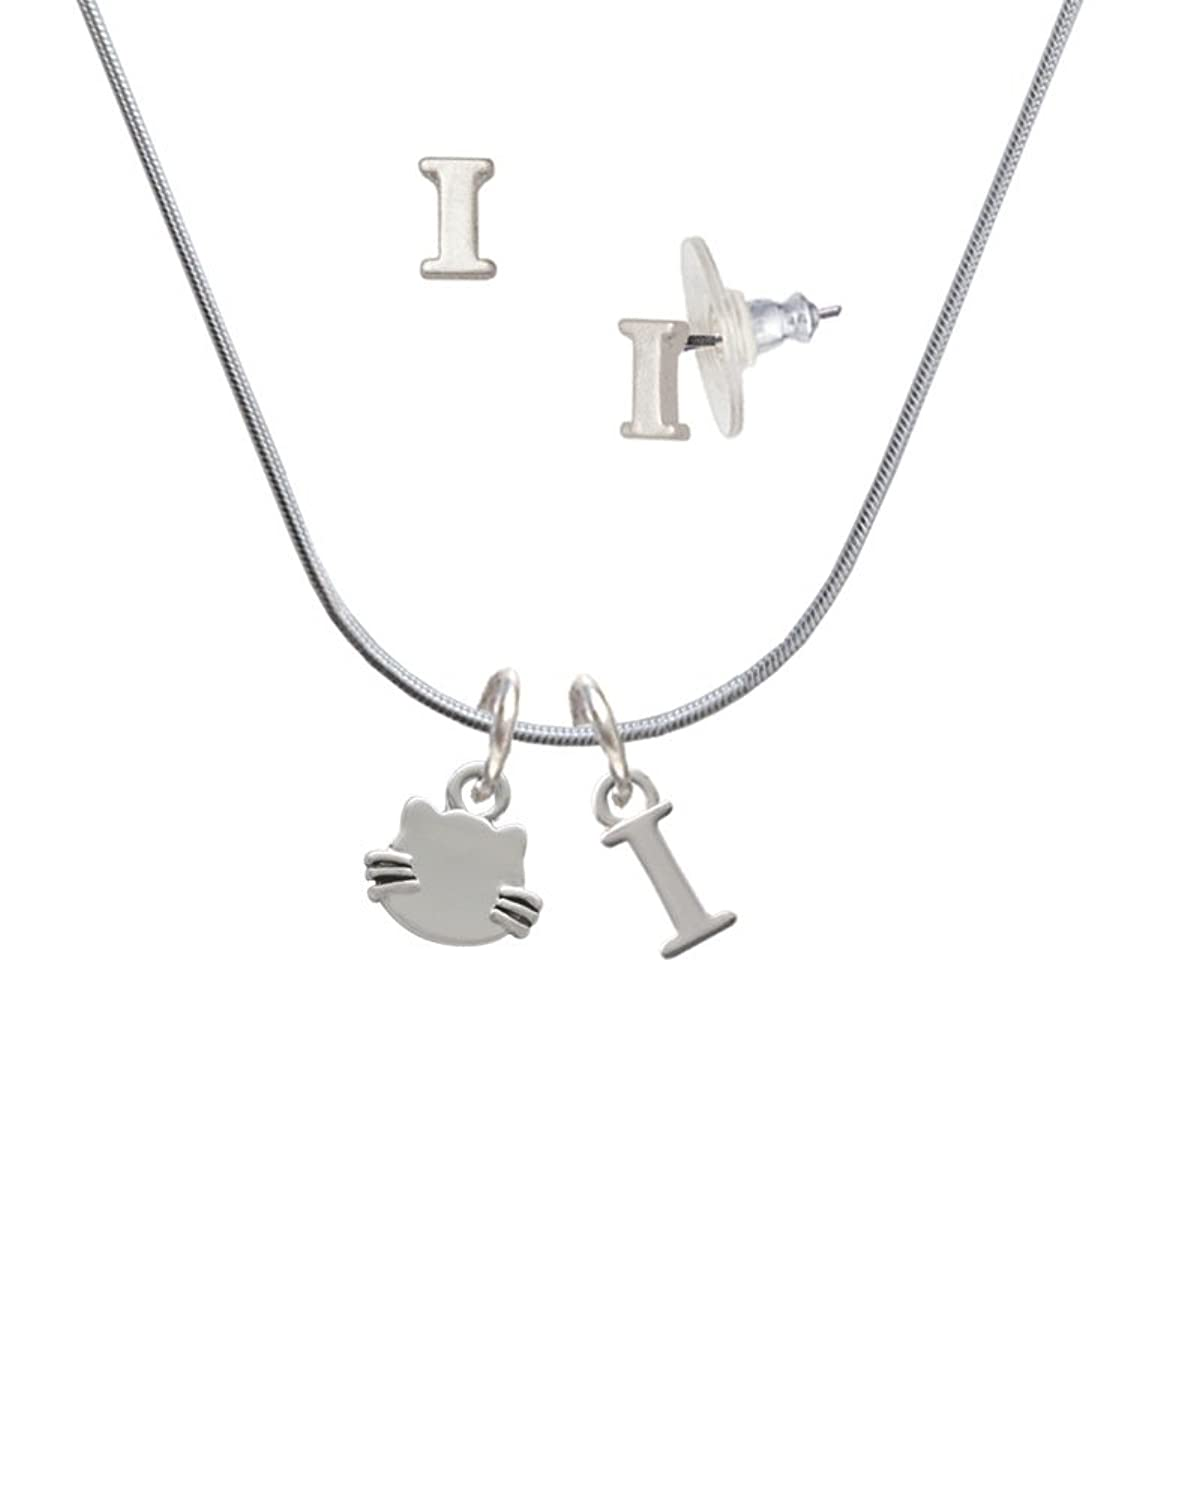 Mini Cat Face with Whiskers - I Initial Charm Necklace and Stud Earrings Jewelry Set